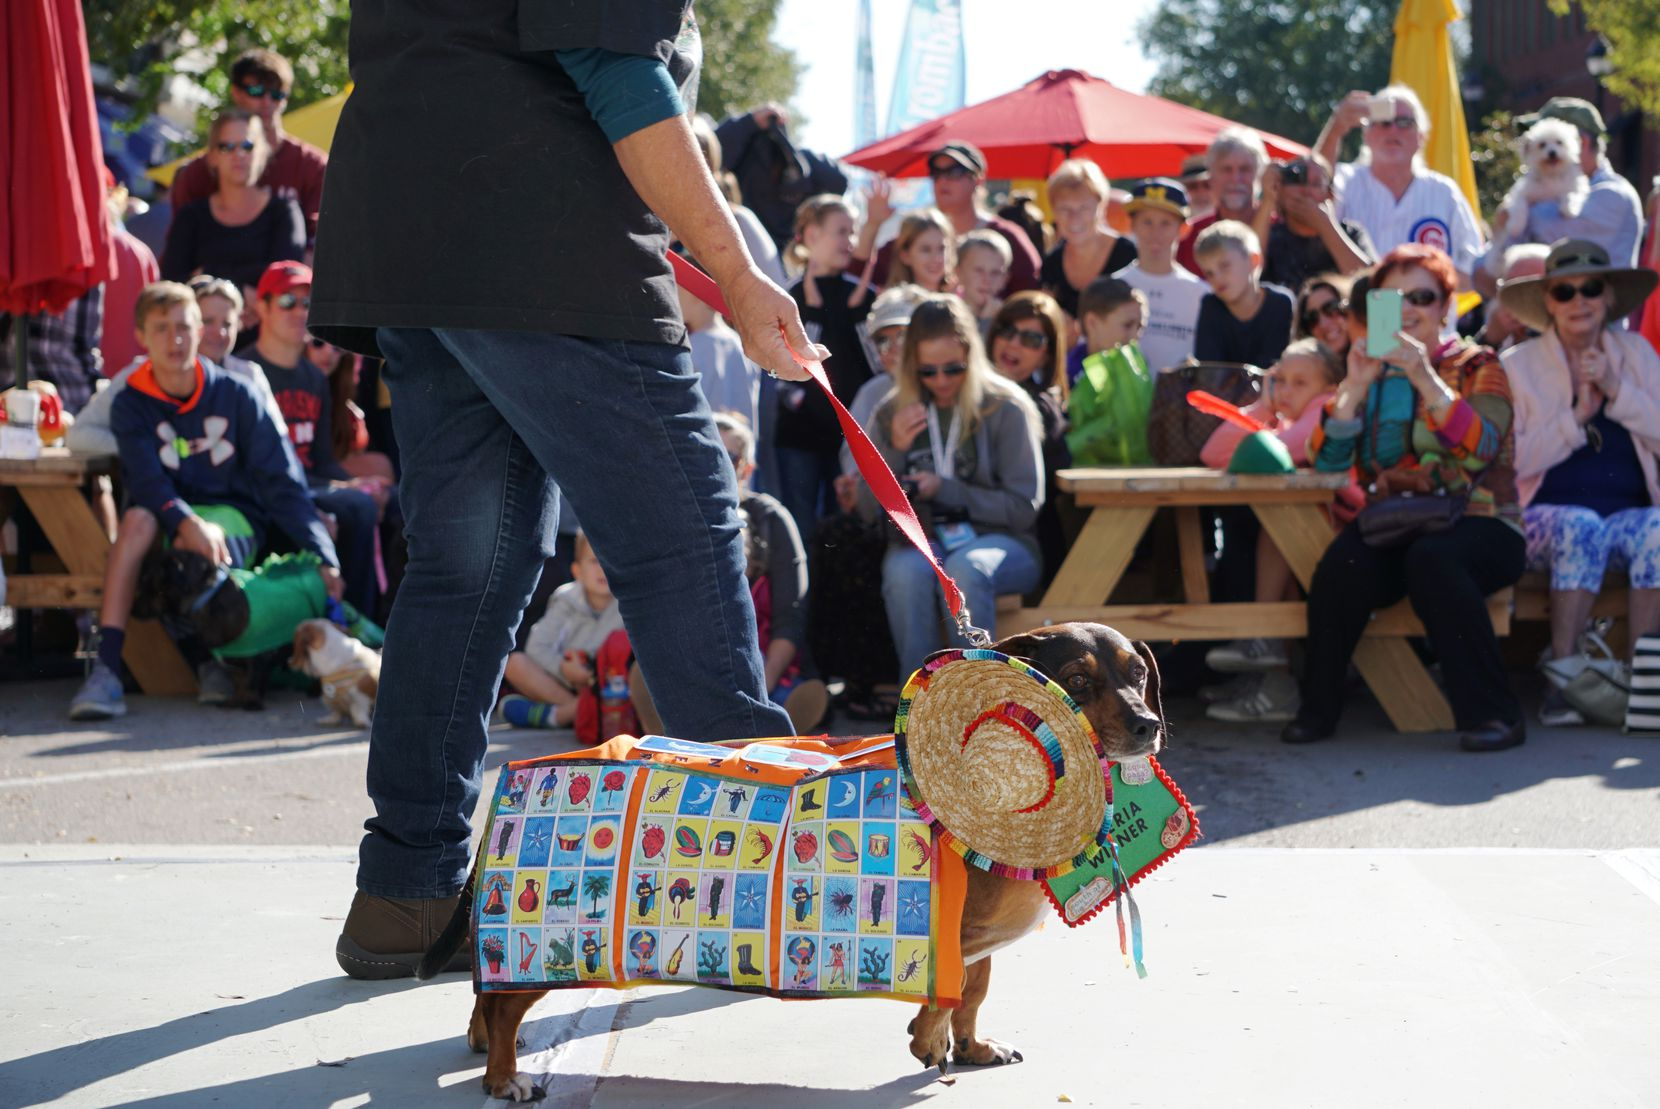 Dress up your dachshund and celebrate Oktoberfest Southlake's 20th anniversary. Besides a costume contest for wiener dogs, owners can see how fast the pooches' little legs can carry them in a dachshund race.